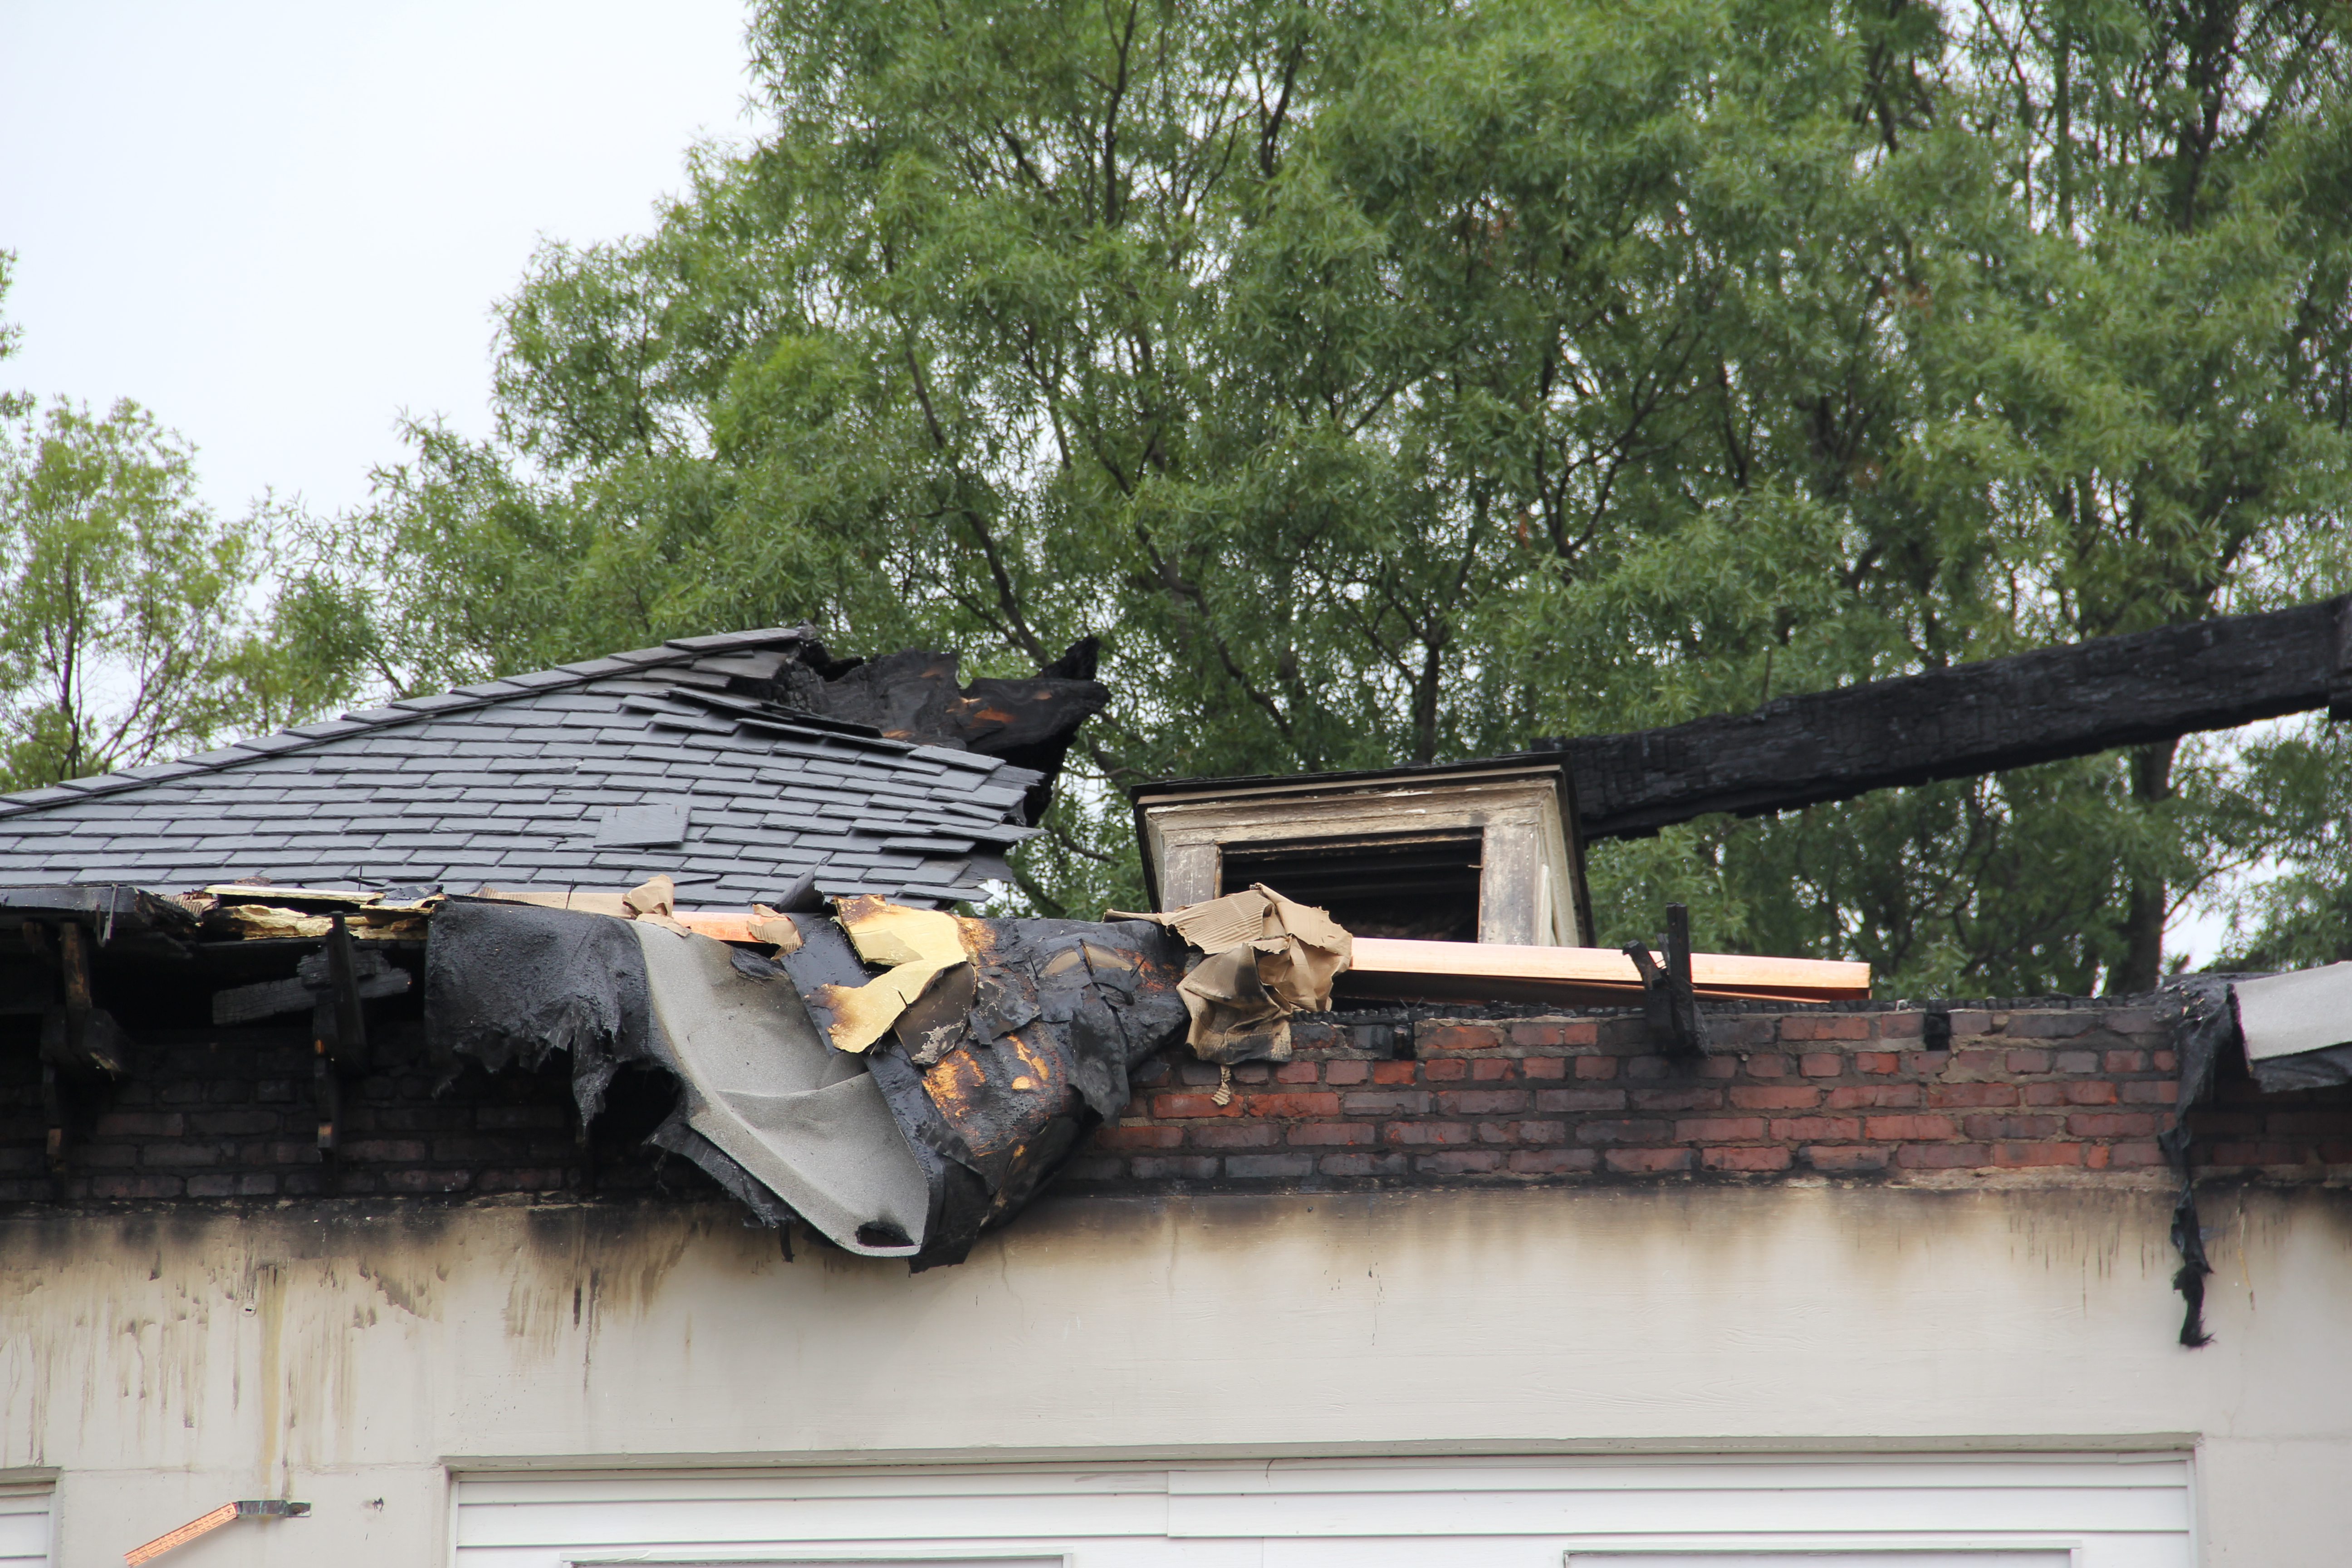 Photo of a burned rooftop